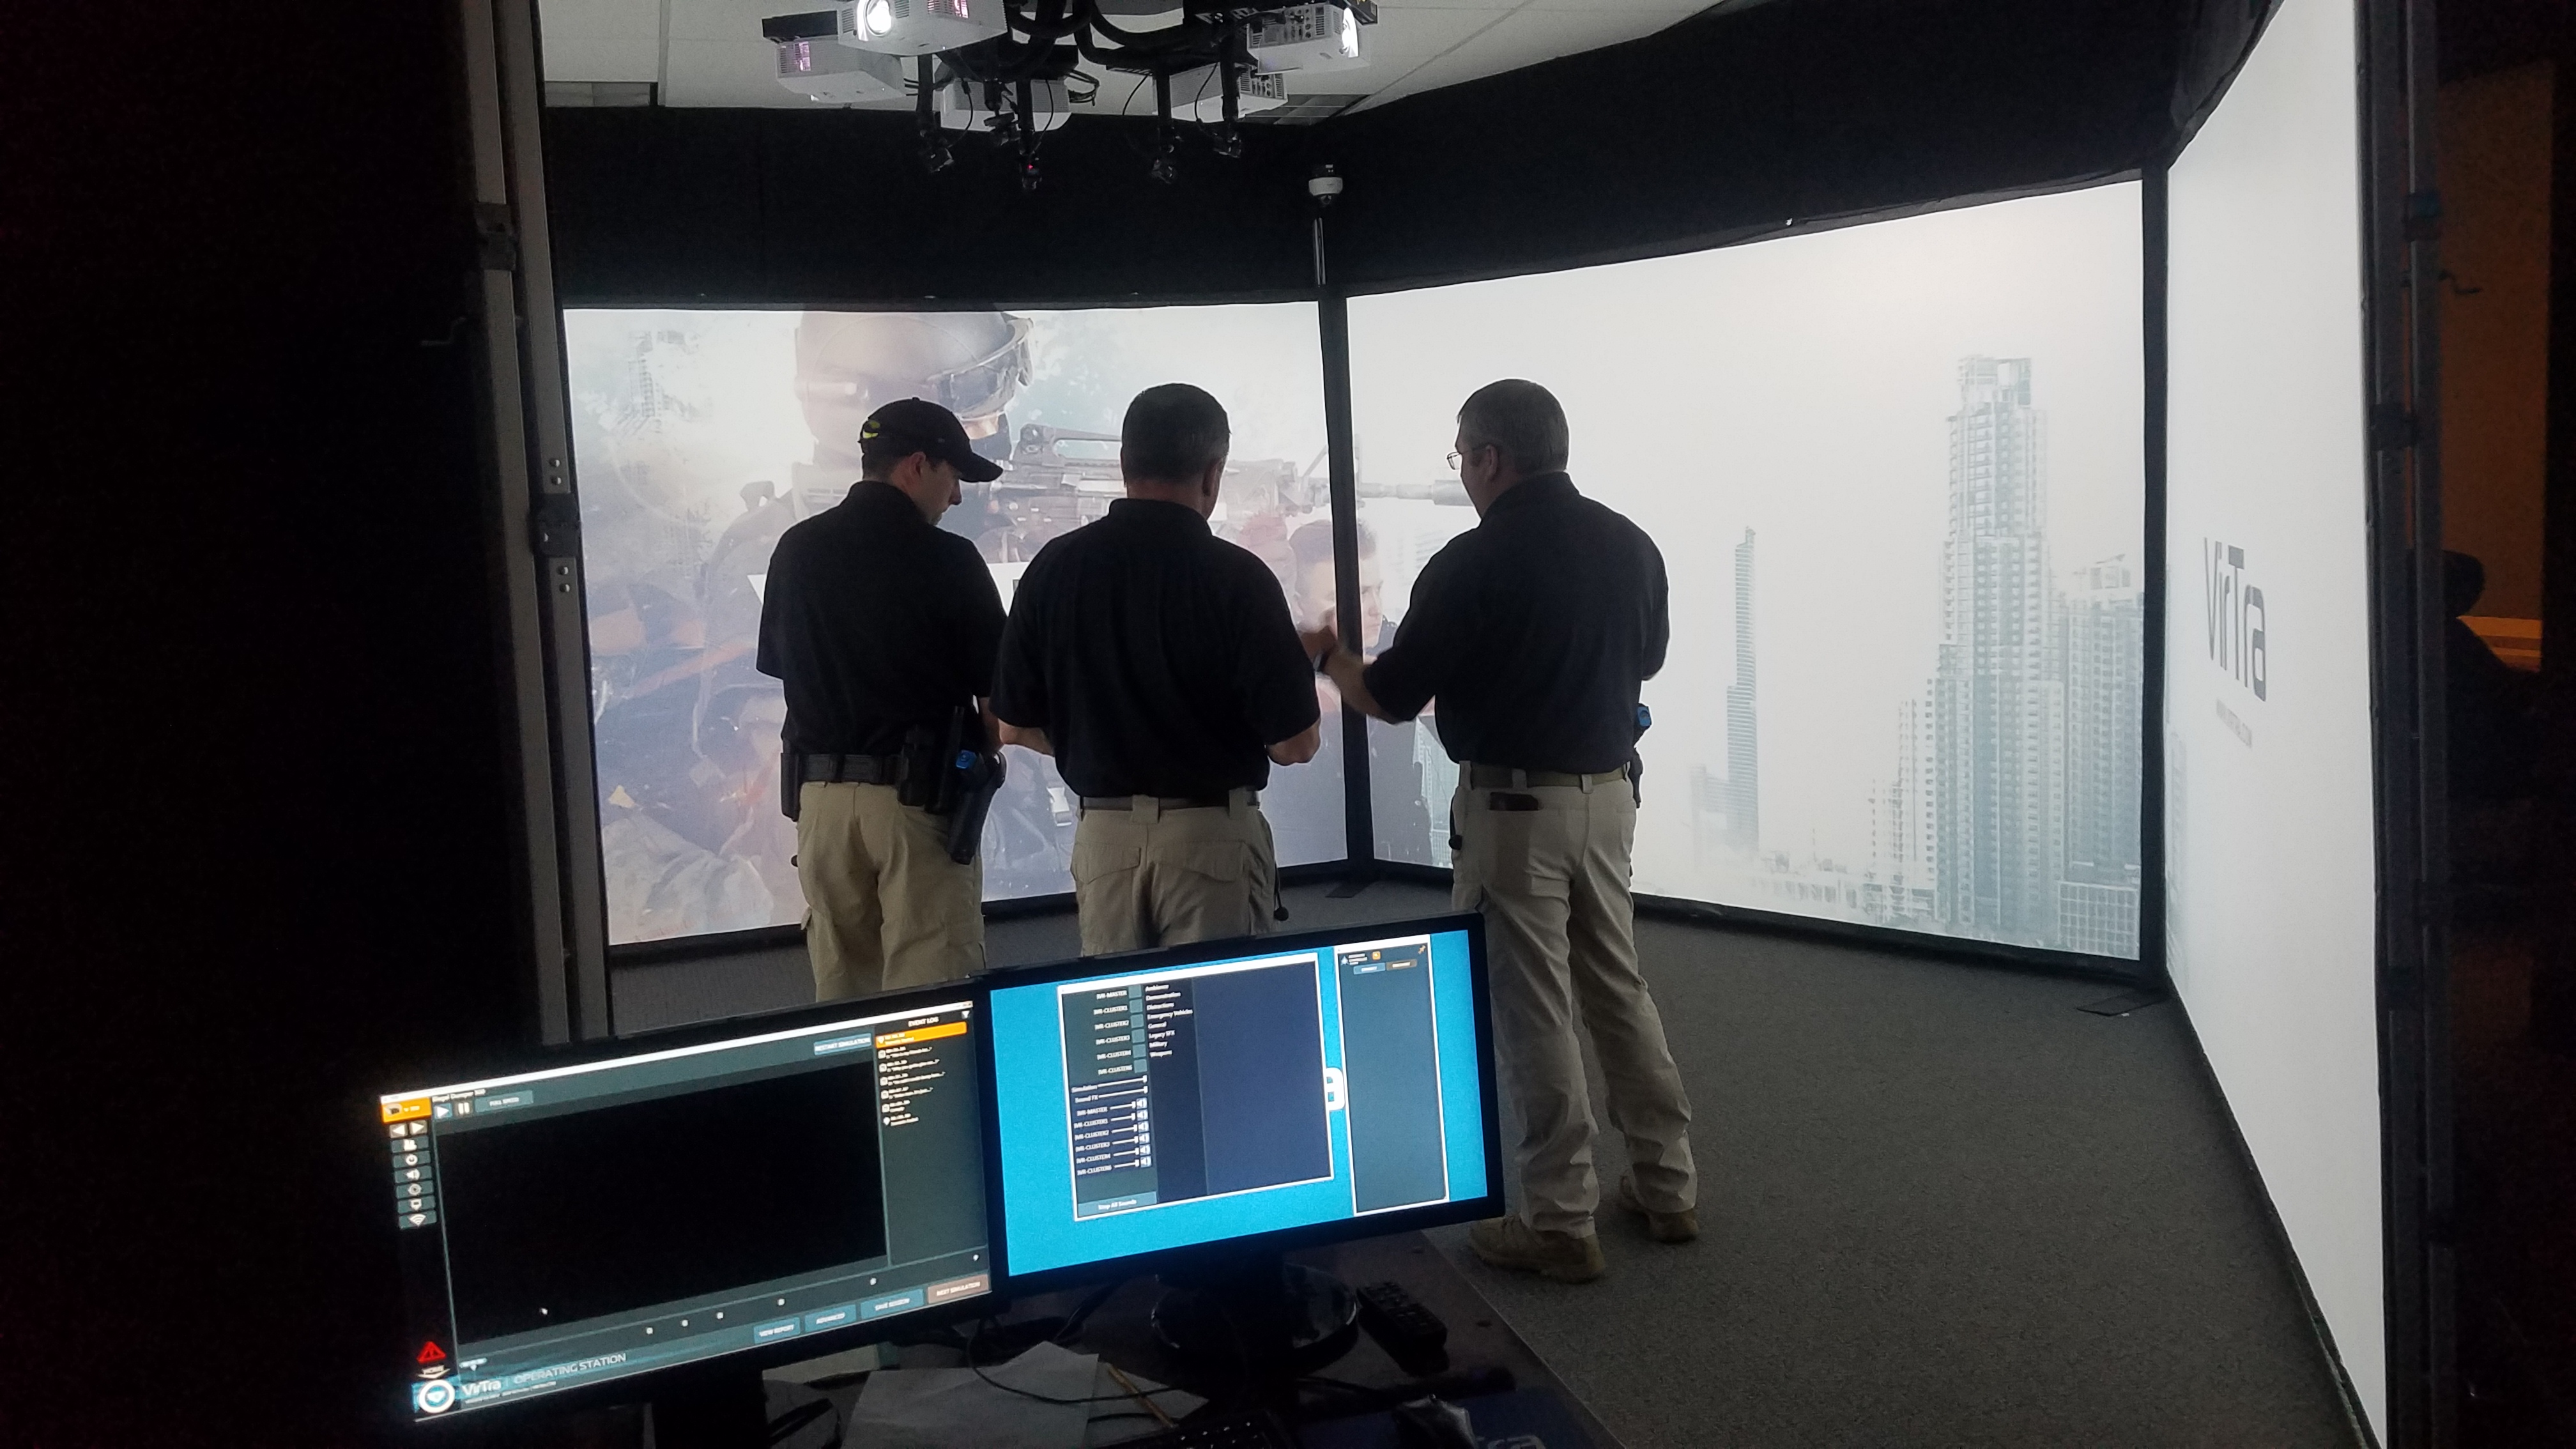 Police Officers in Simulator